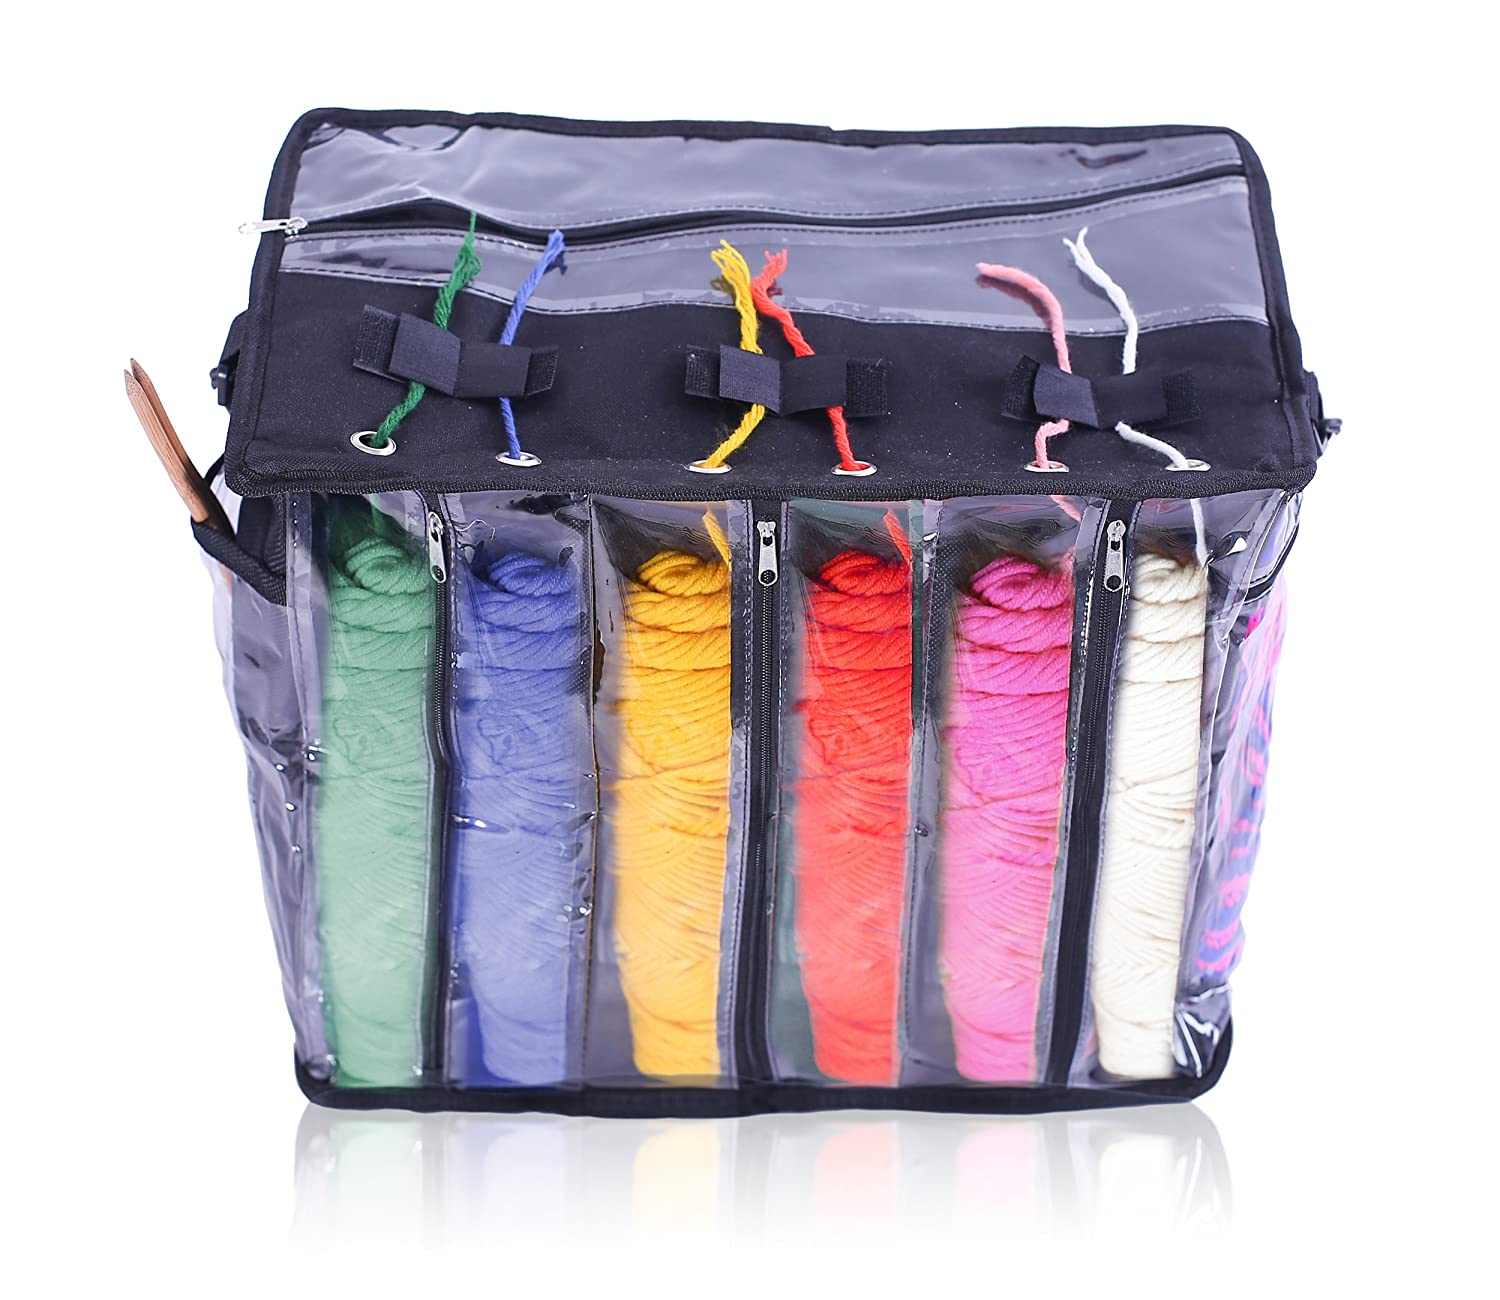 aba91cb38aaf Imperius Yarn Storage Bag Portable Tote Easy to Crochet Knitting  Organization.Storage for Accessories and Slits on Top to Protect Wool and  Prevent Tangling